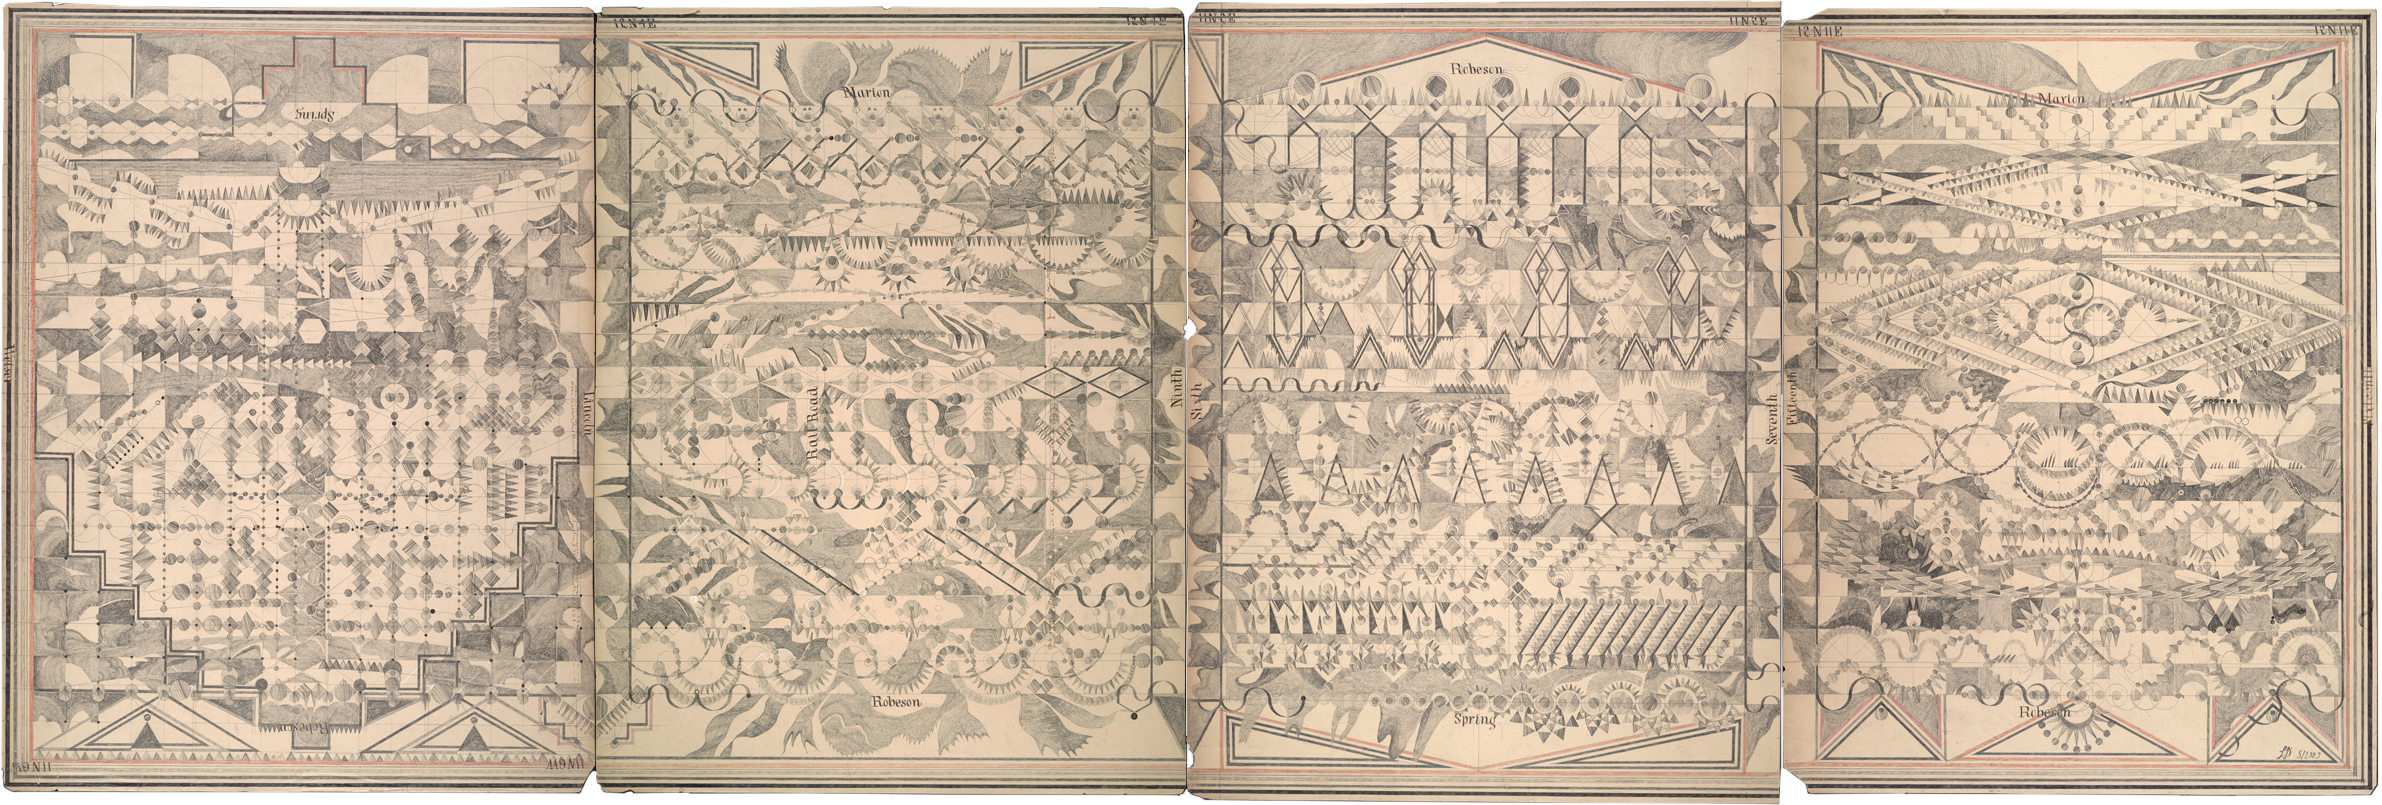 Winter's Telephone,Graphite on Antique Ledger Book Pages.25 x 72 inches